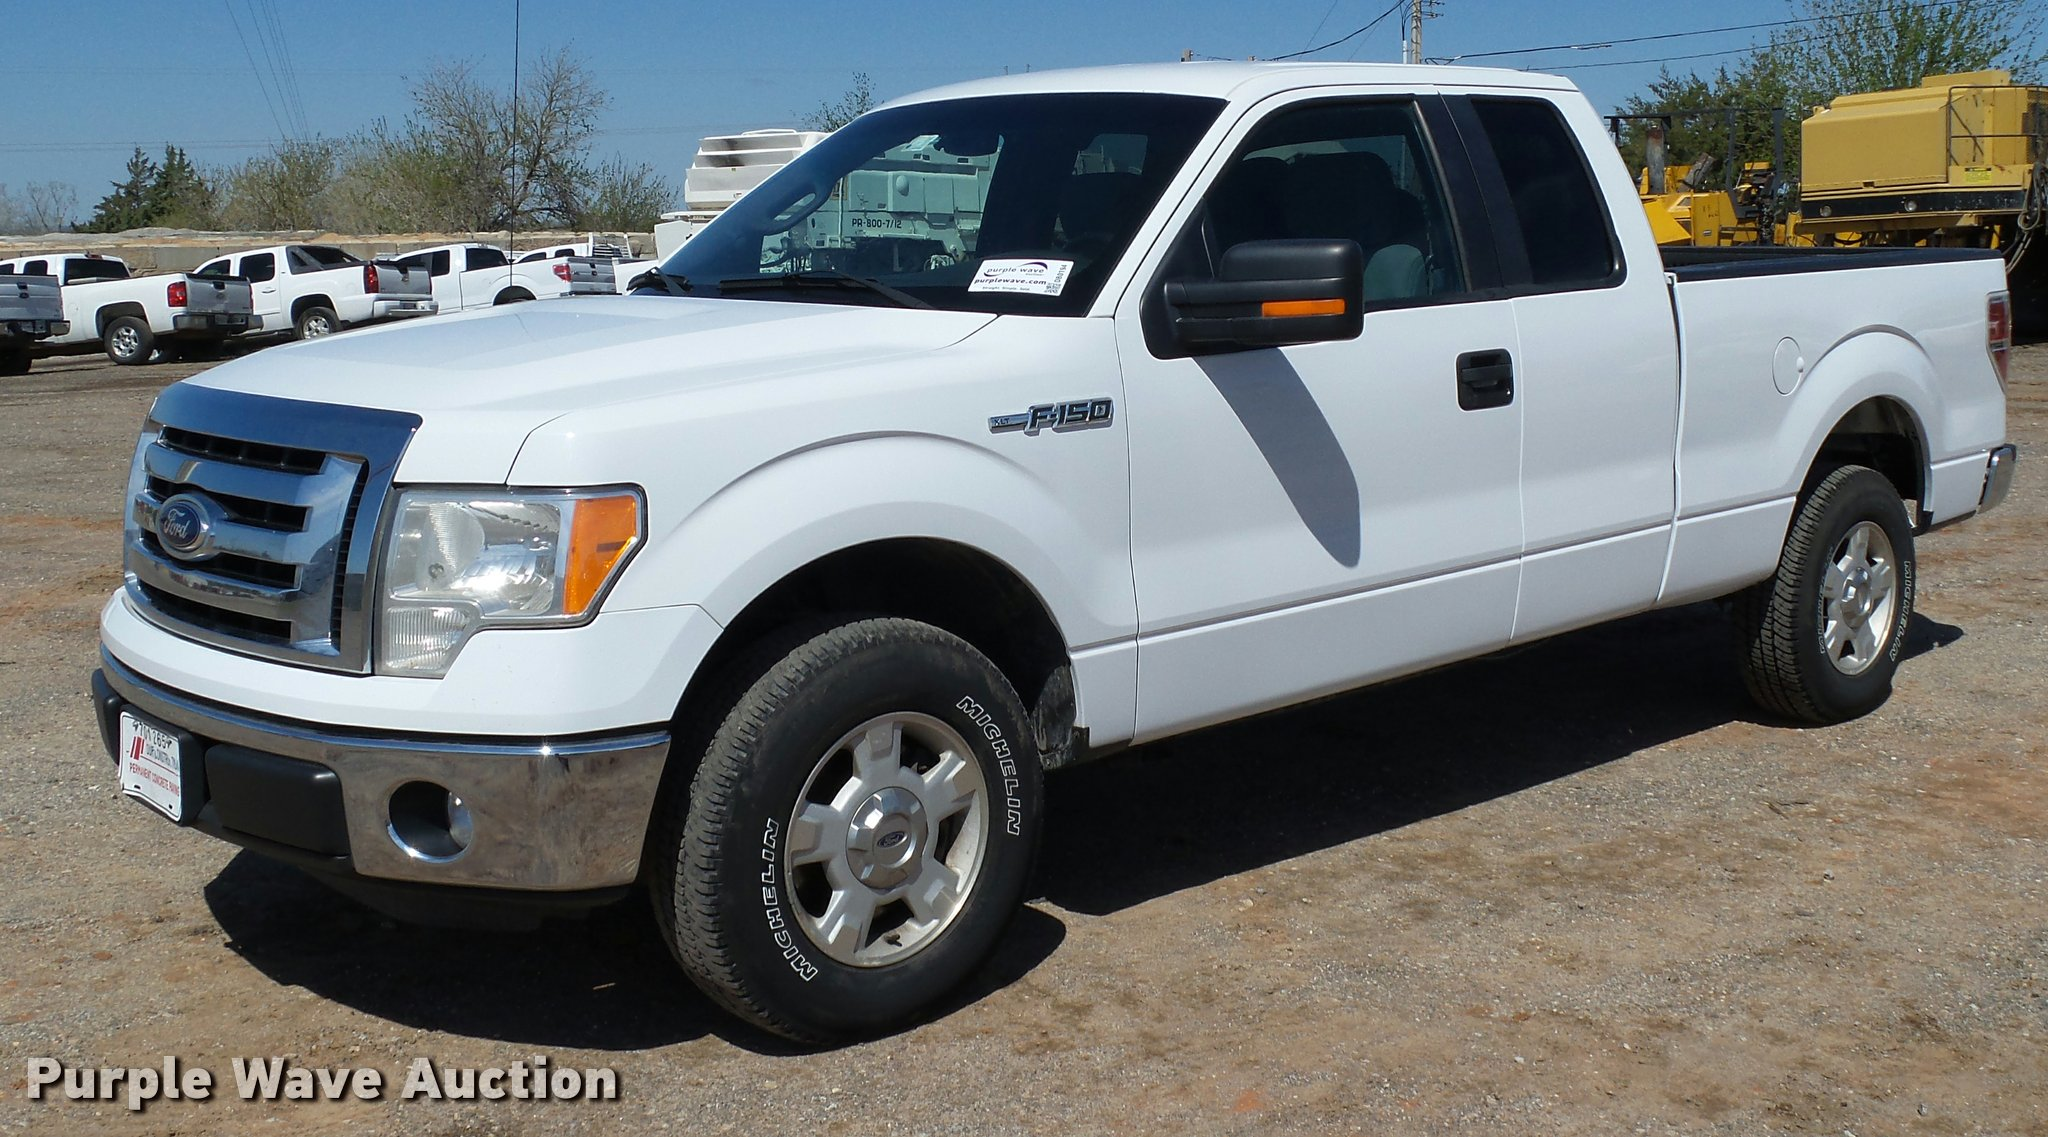 2012 Ford F150 Xlt Supercab Pickup Truck Item Db0194 Sol 2004 F 150 Image For